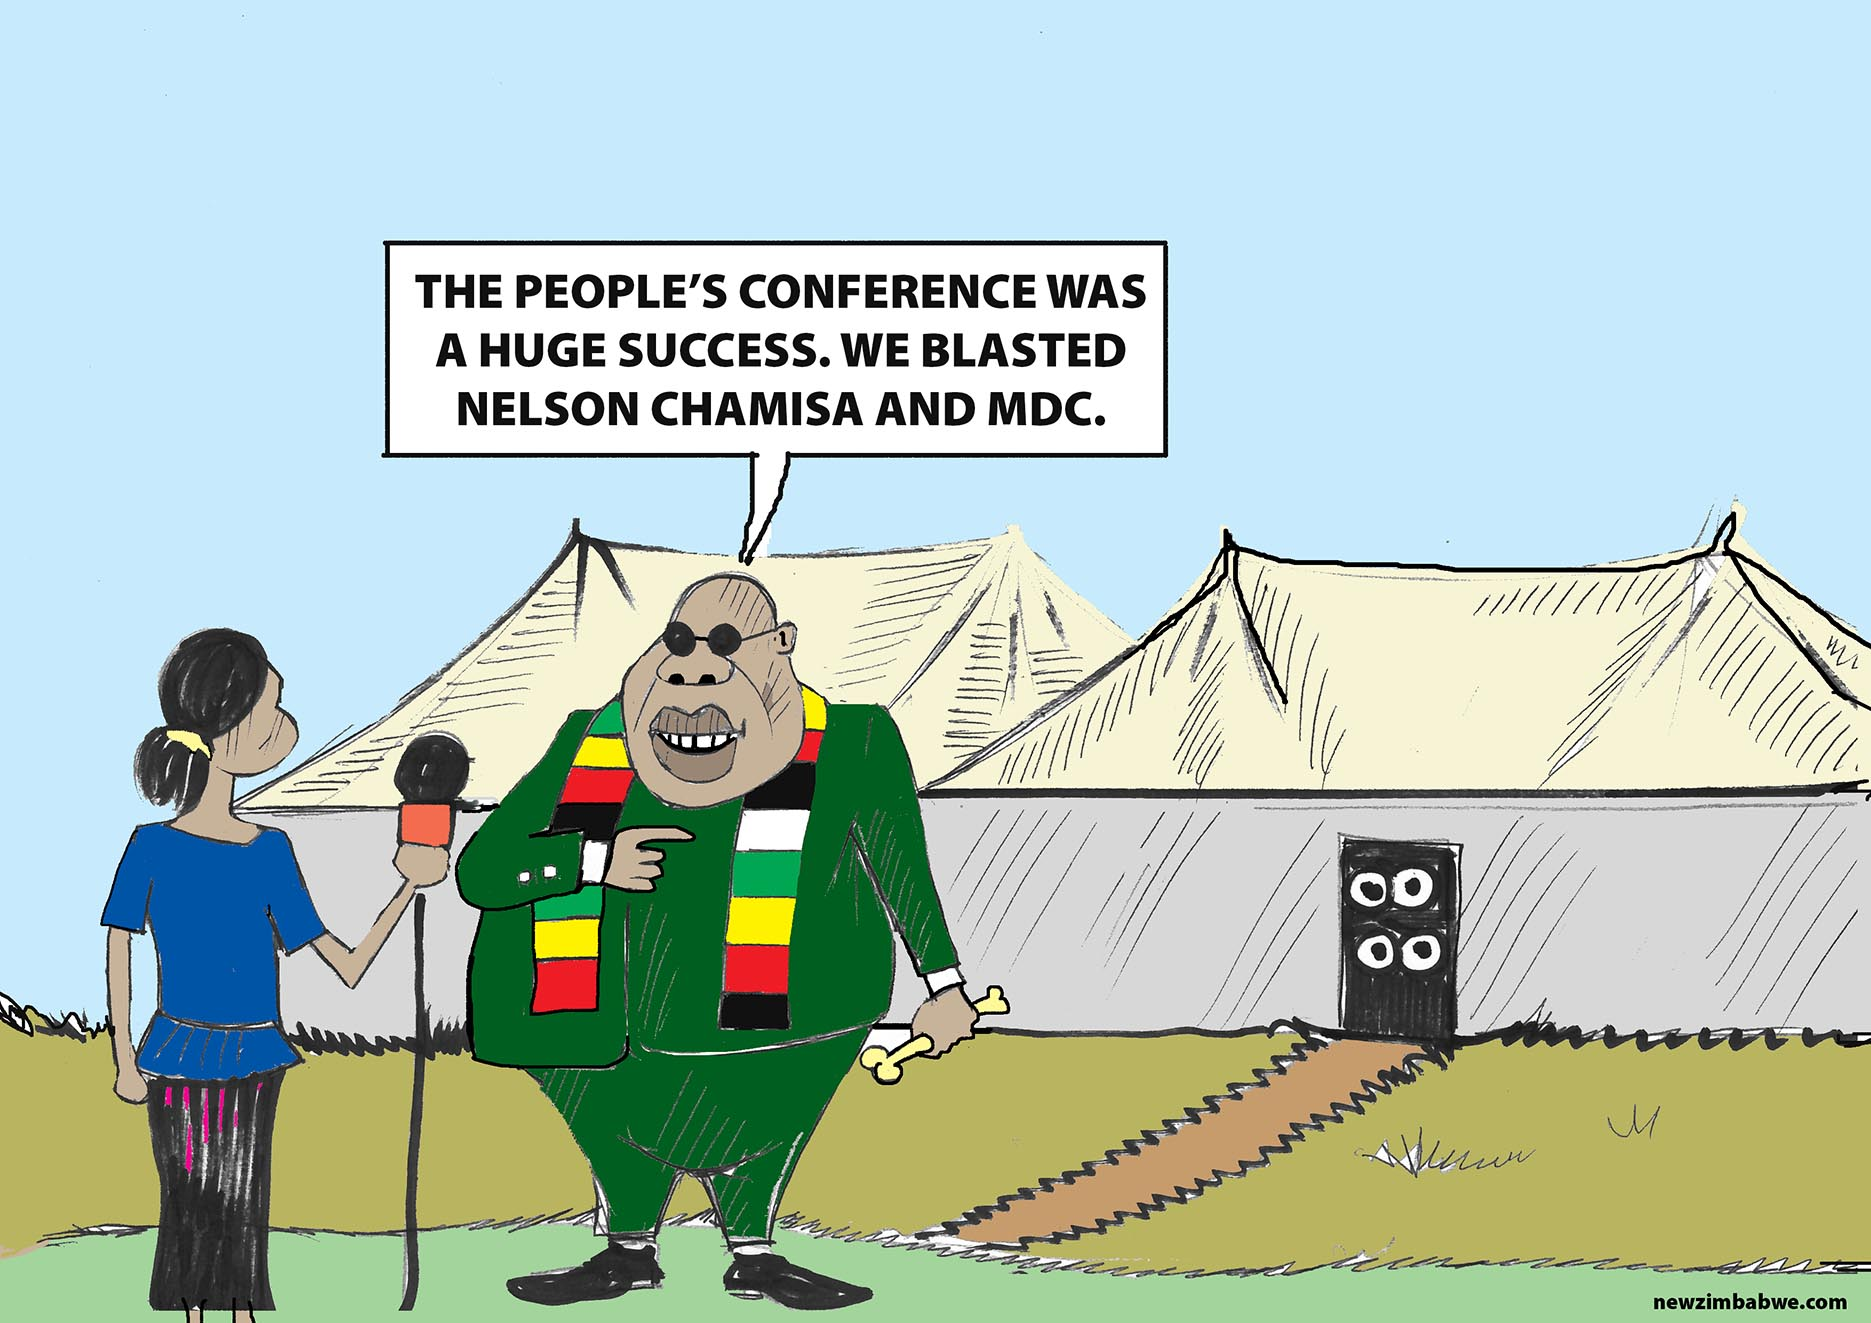 The ZANU PF conference was a success